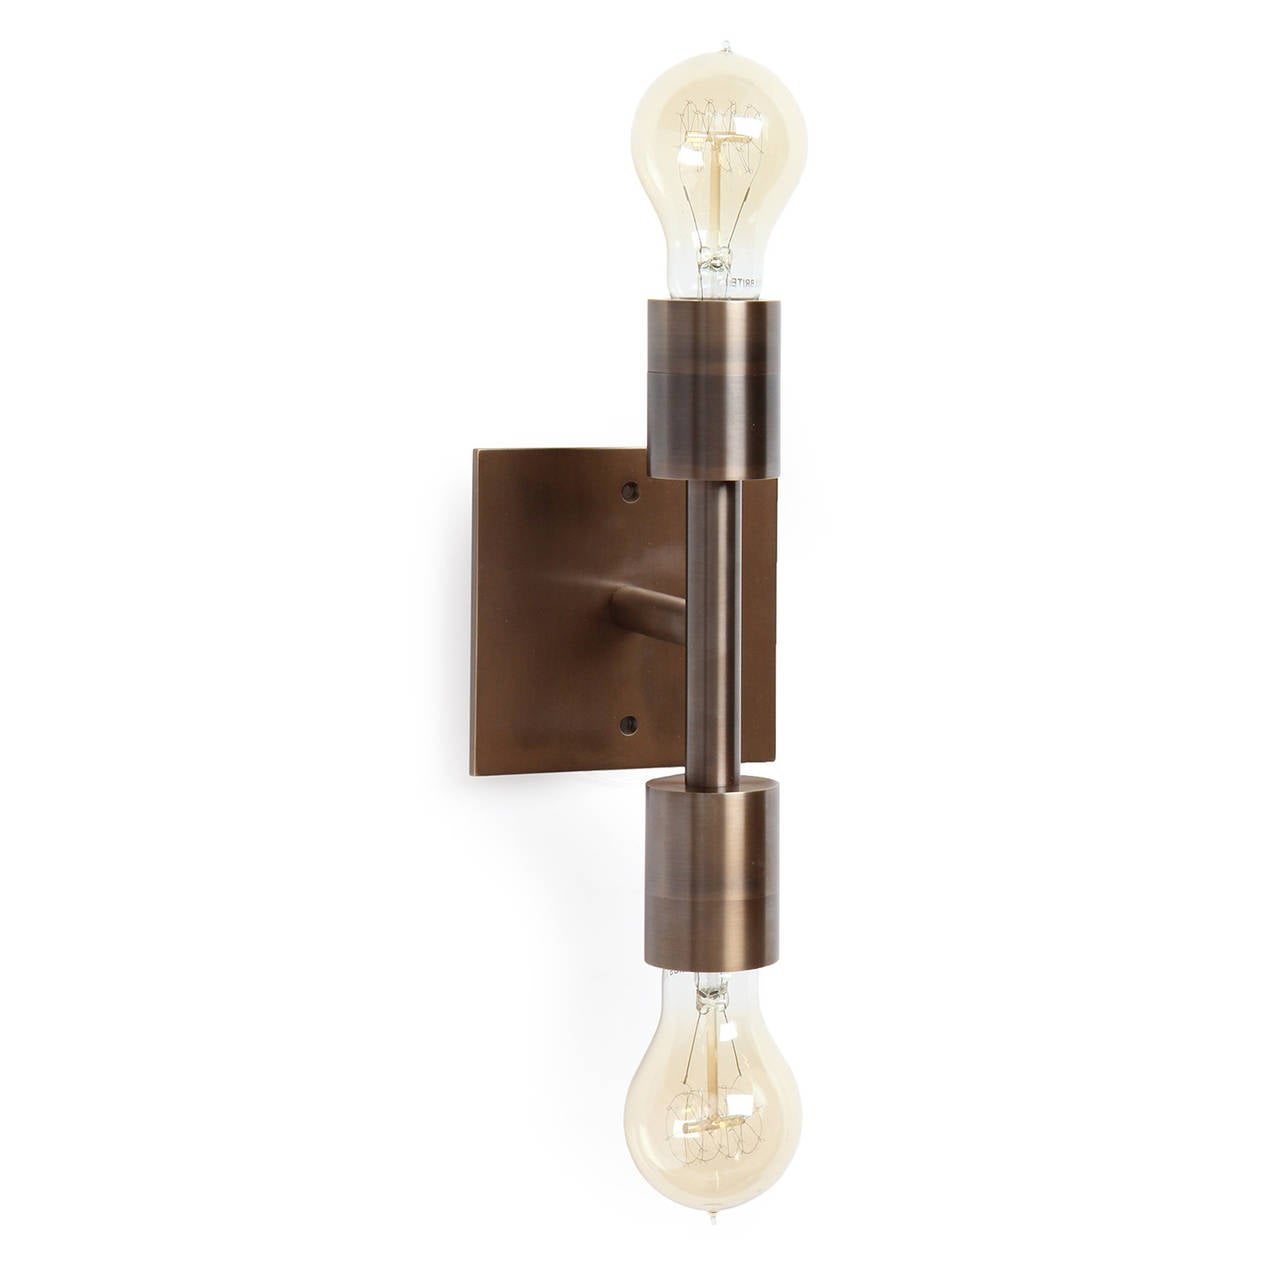 Wyeth Original Double Wall Sconce in Patinated Brass In Excellent Condition For Sale In Sagaponack, NY